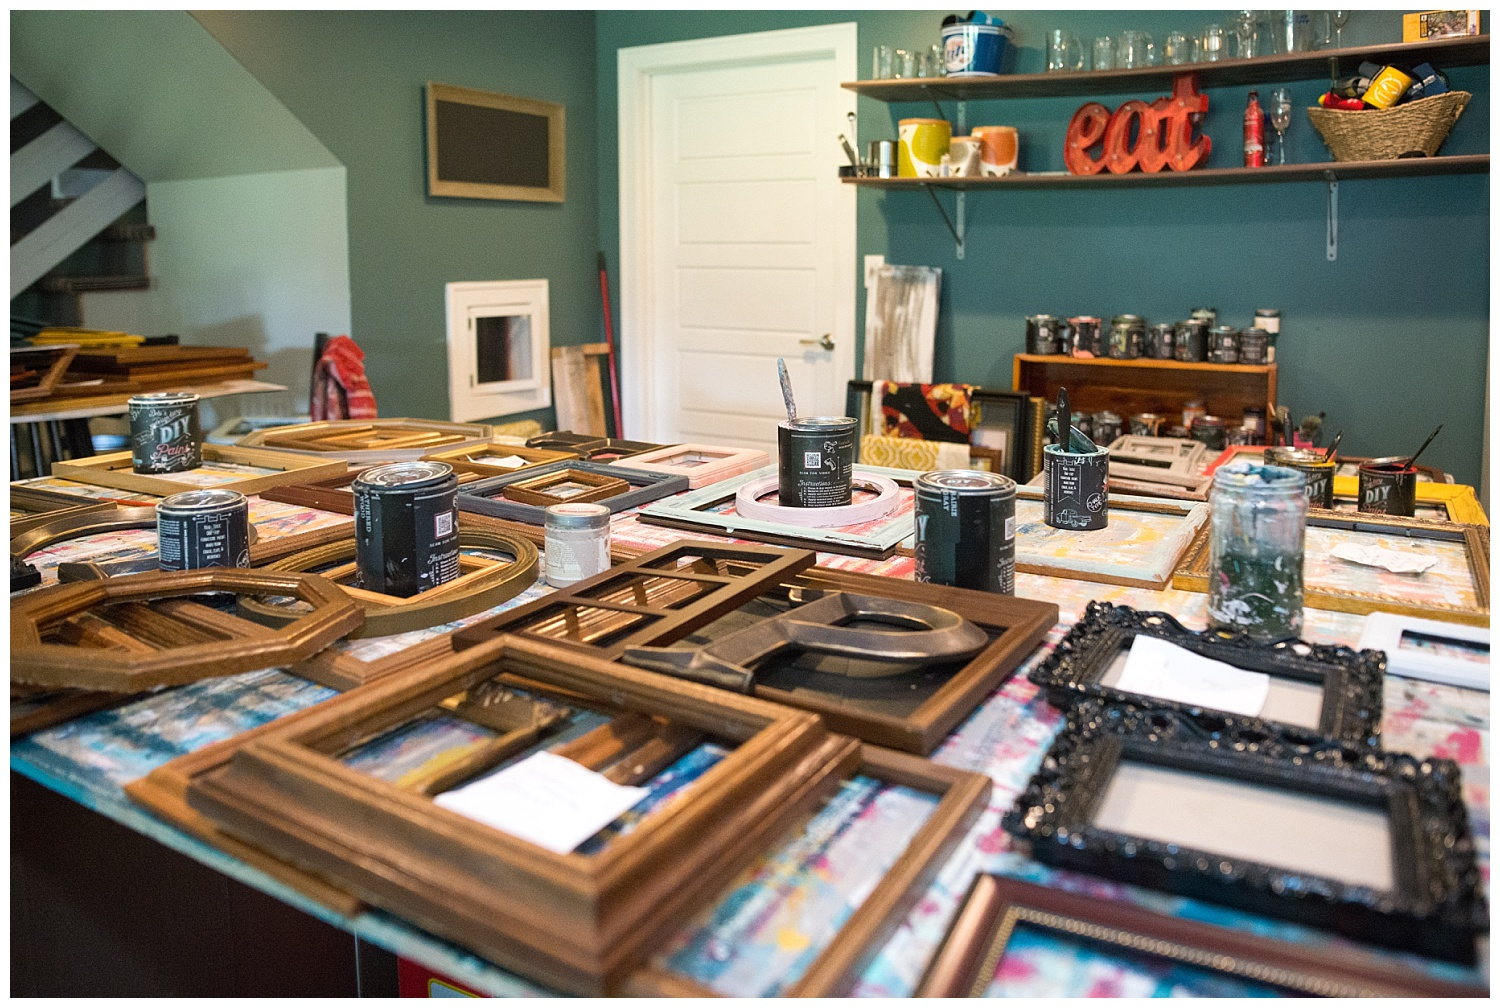 This is the scene in her basement where the bar should be.  And this is just one room of five (have I mentioned that their house is huge?) that has been taken over by their businesses.  They've got big plans to build a shed and move it all out of the house so at the end of the day they can relax and not have to look at work to be done.